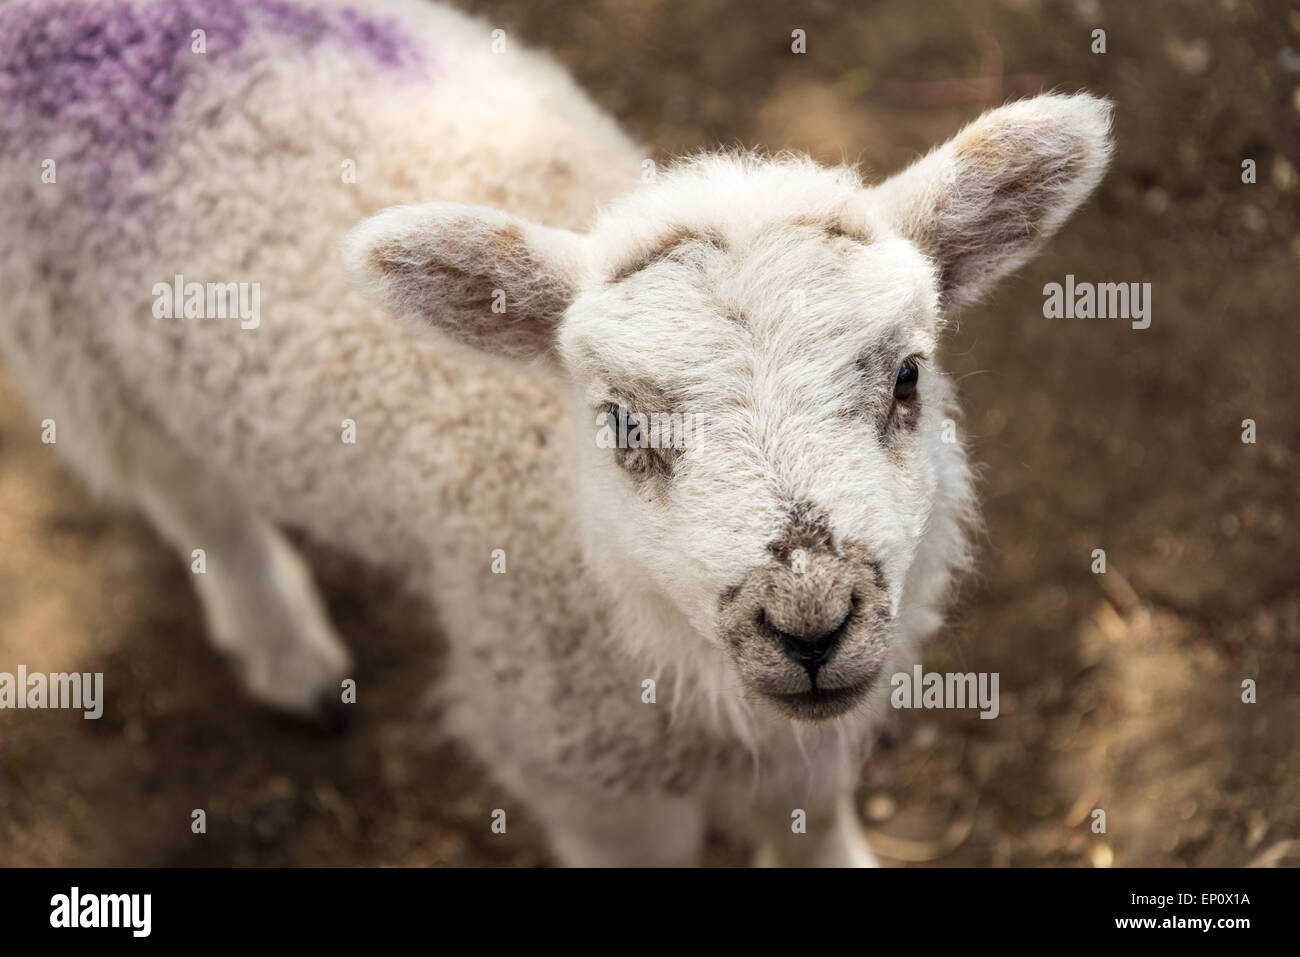 A close-up of a spring lamb in a farmyard. Stock Photo